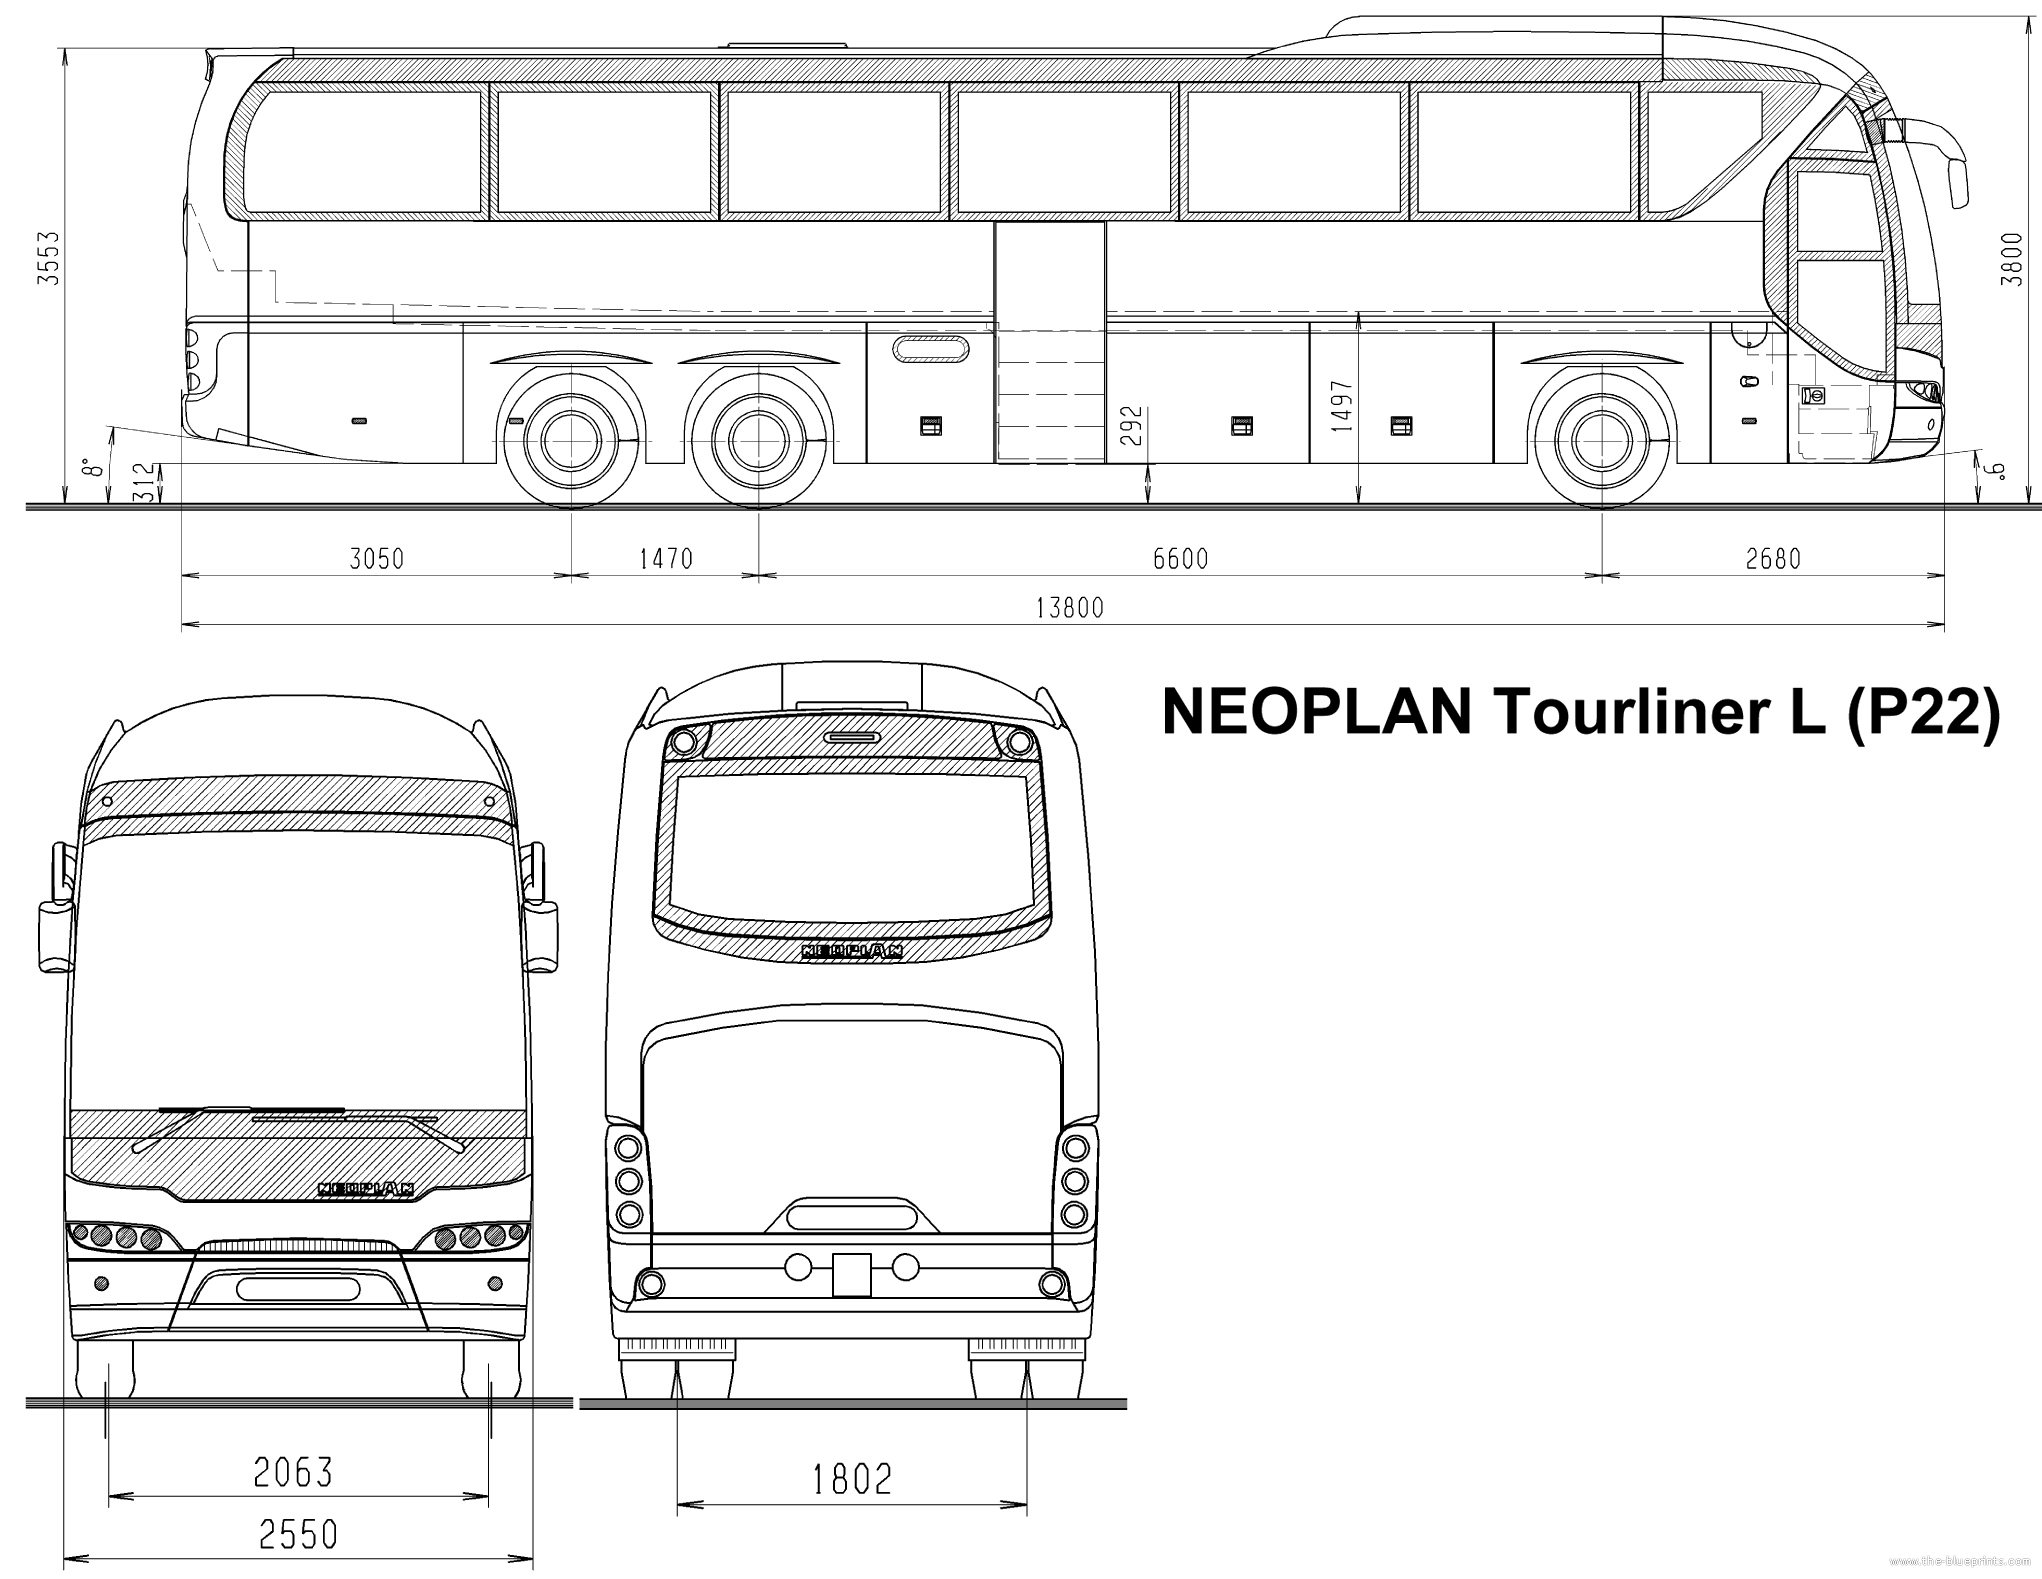 Neoplan tourliner photo - 4